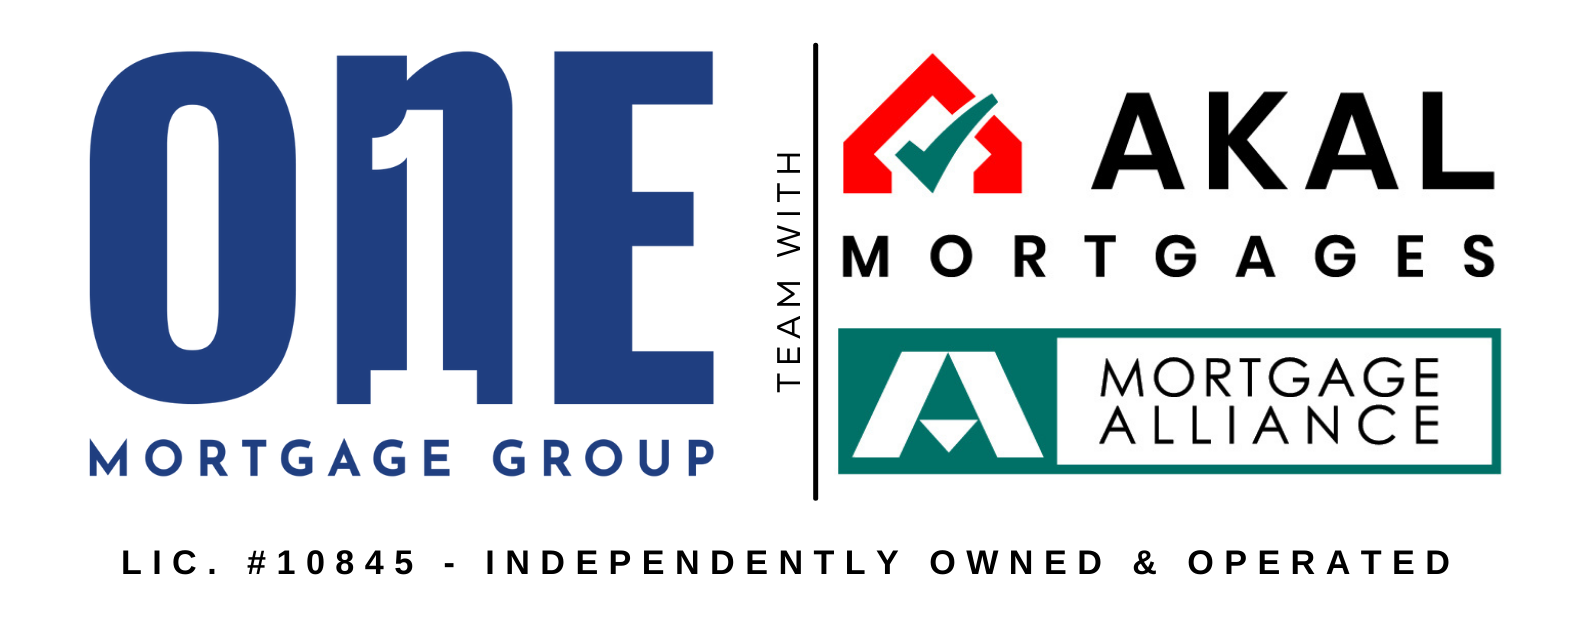 one mortgage group akal mortgages